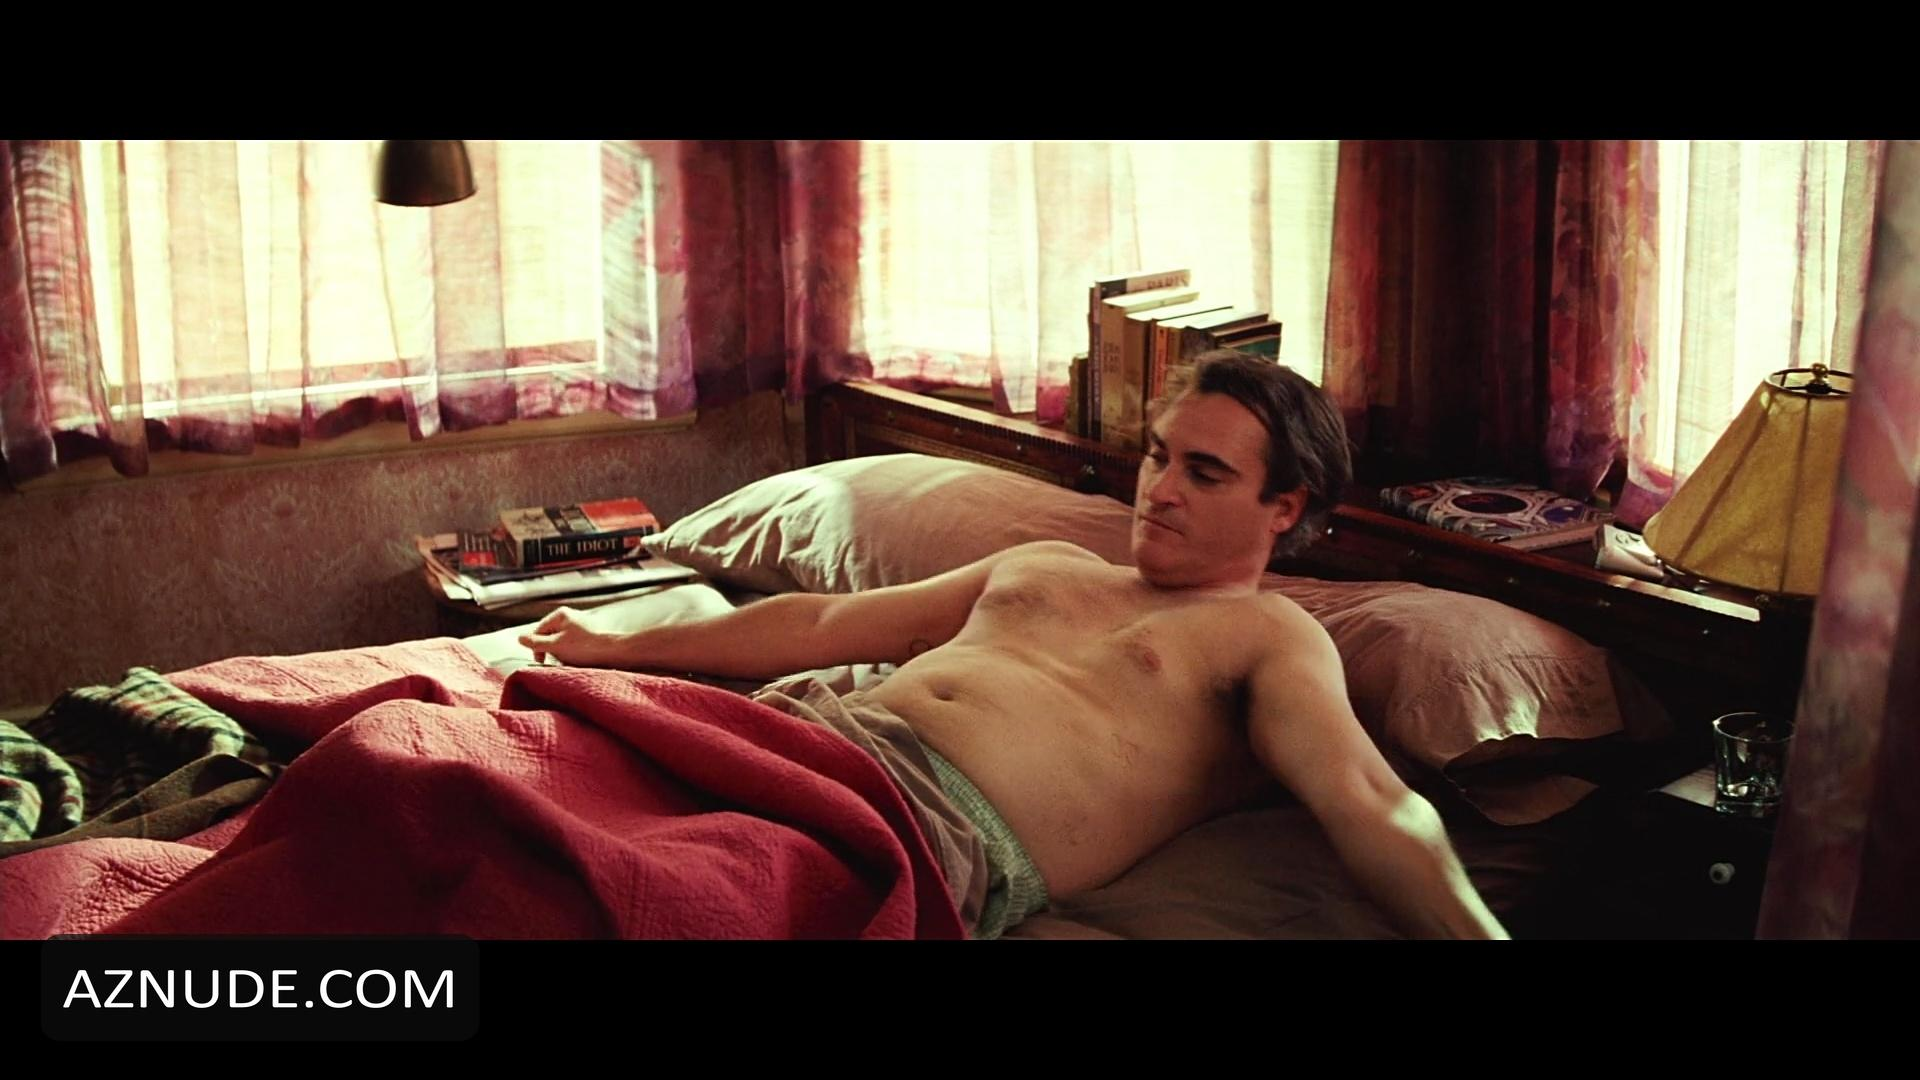 Joaquin Phoenix Is Hot With His Clothes Off